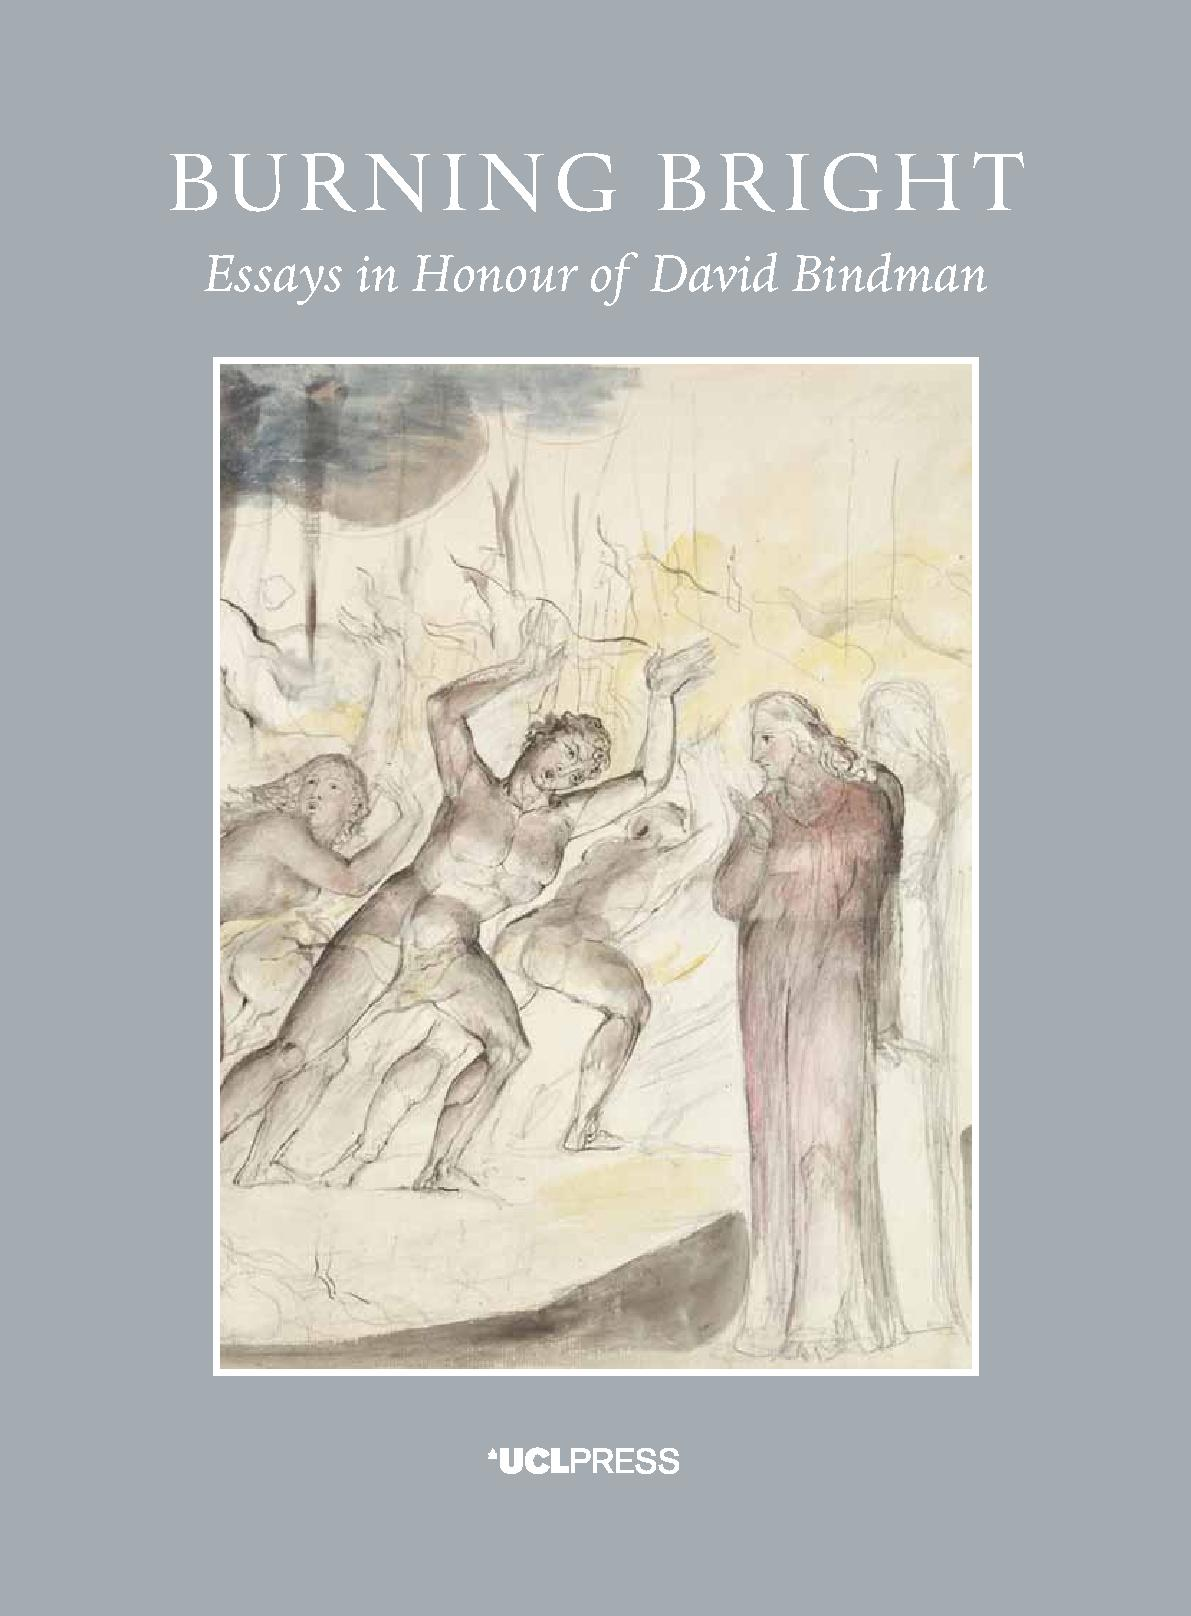 PDF HostBurning Bright: Essays in Honour of David Bindman - Diana Dethloff